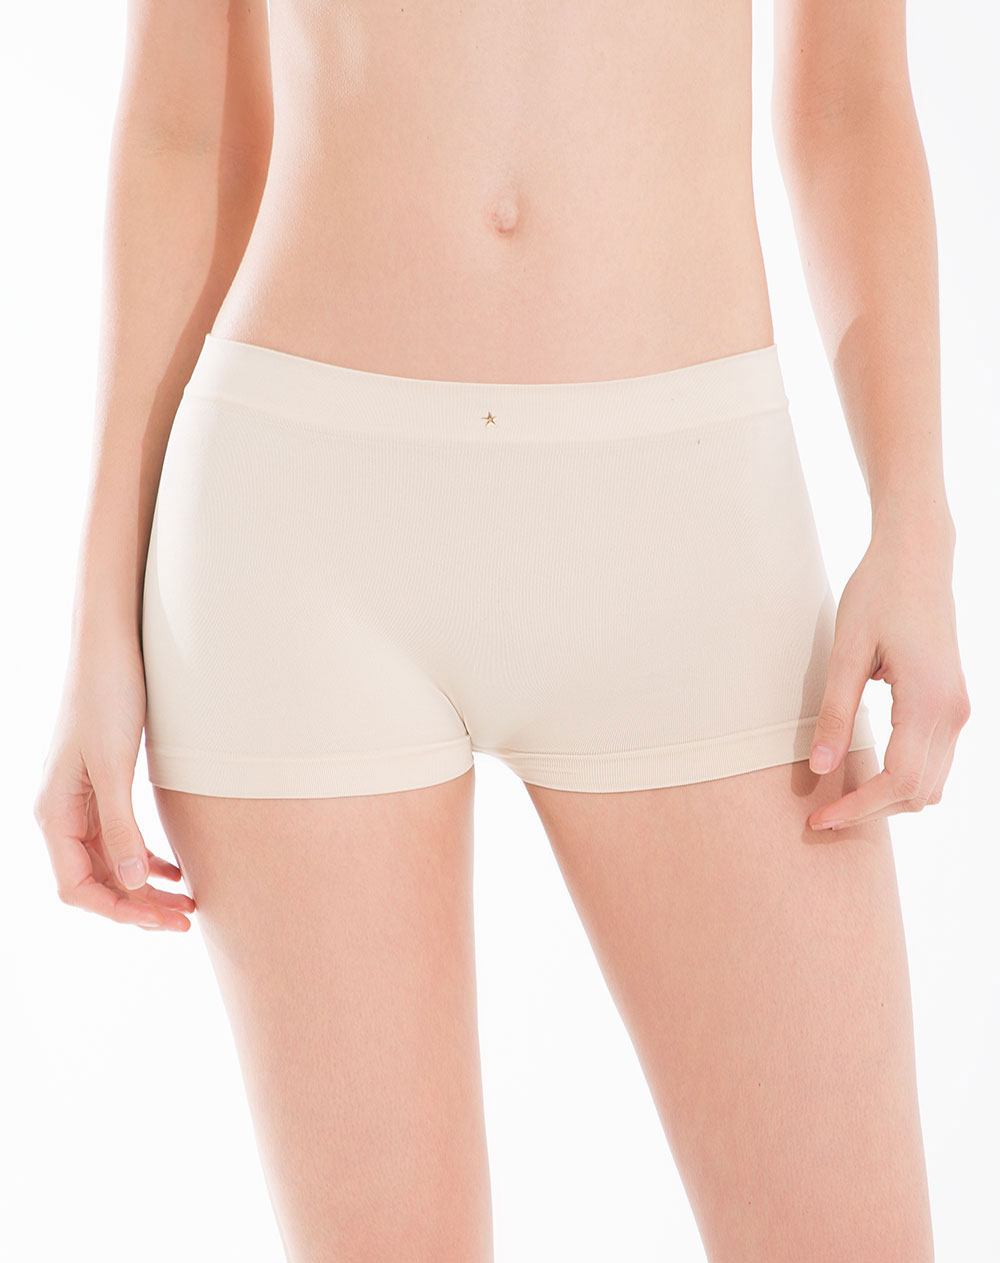 model in light-tan form-fitting underwear